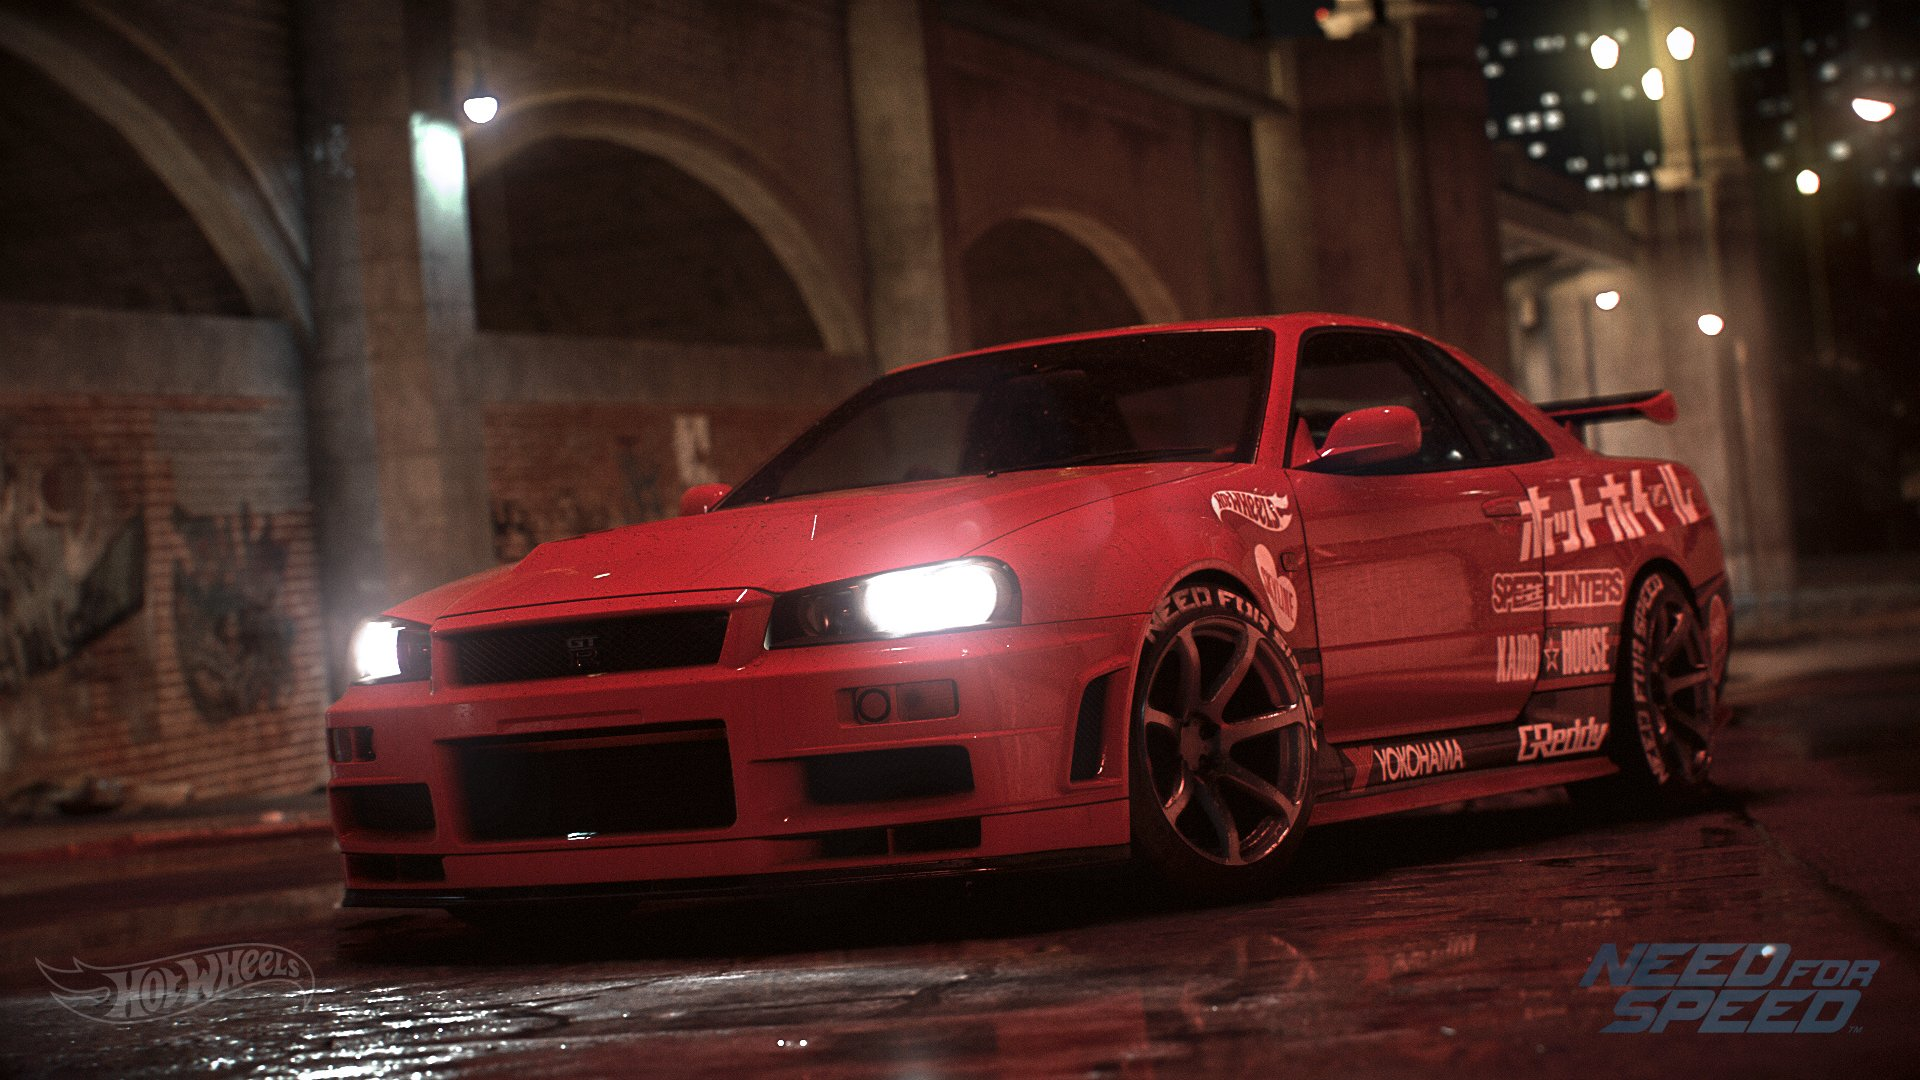 Nissan skyline gt r r34 hot wheels edition full hd for Need for speed wallpaper